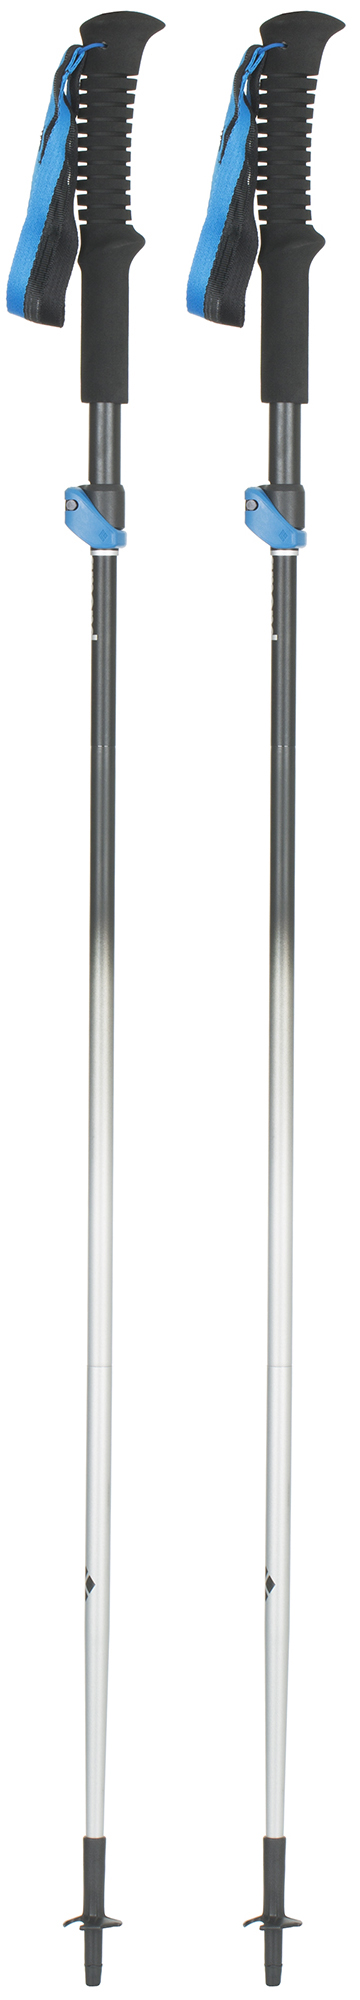 Black Diamond Трекинговые палки Black Diamond Dist Flz Z-Poles diamond 230